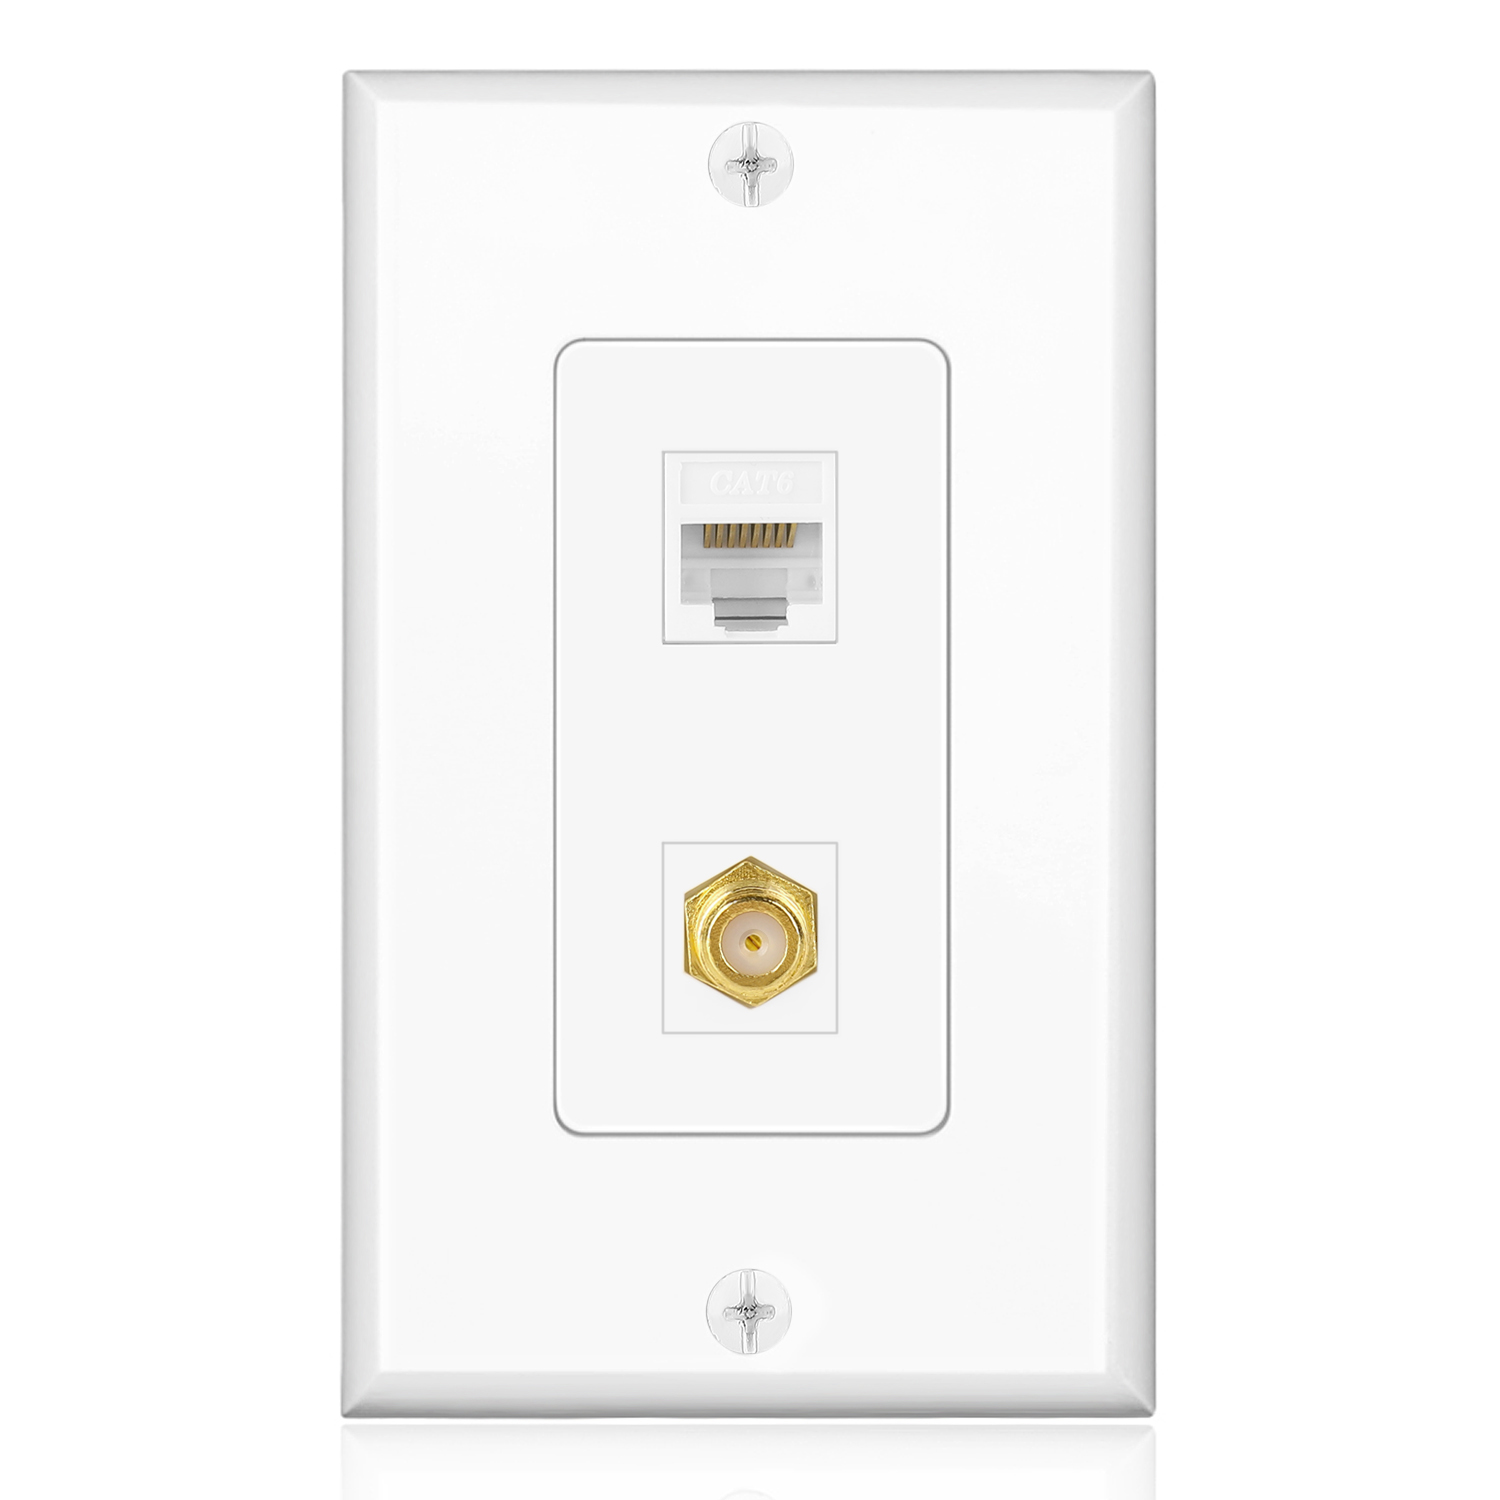 hight resolution of ethernet coax wall plate with 1 rj45 port and 1 gold plated tv f rv furnace wiring diagrams tv wall plate wiring diagram rv